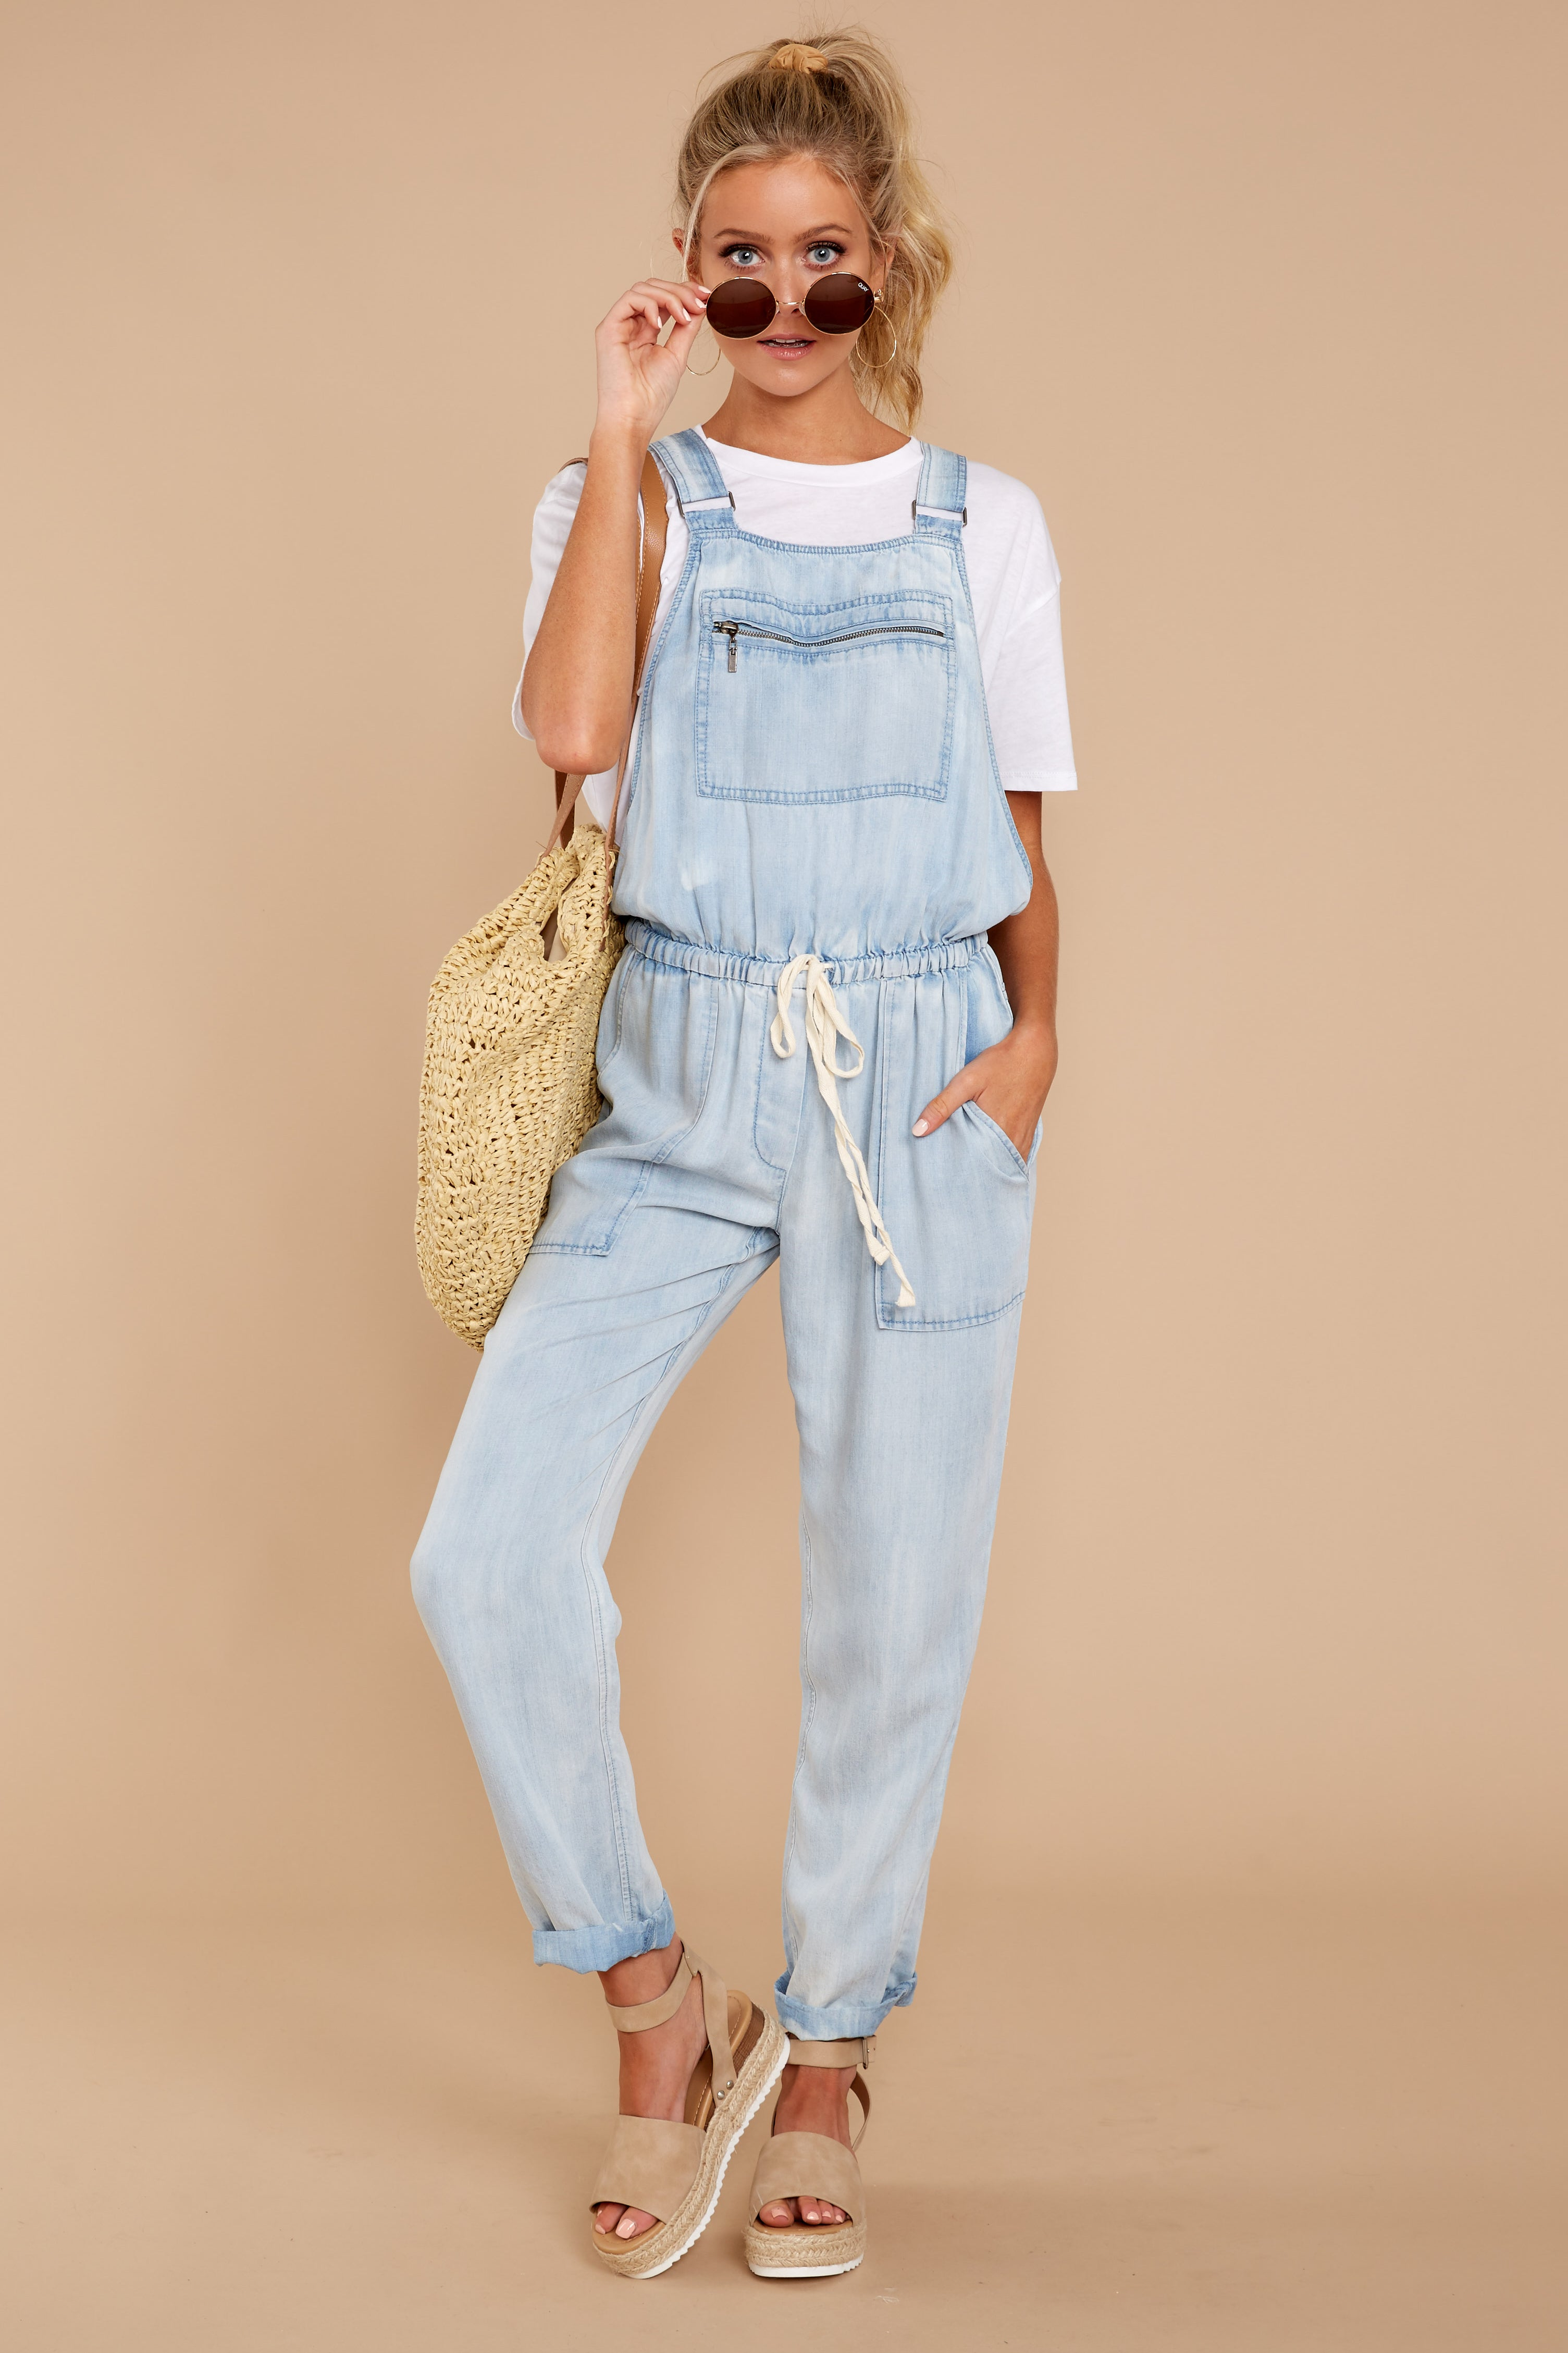 0caa8589ad28 Trendy Light Chambray Overalls - Cute Overalls - Overalls -  74.00 ...